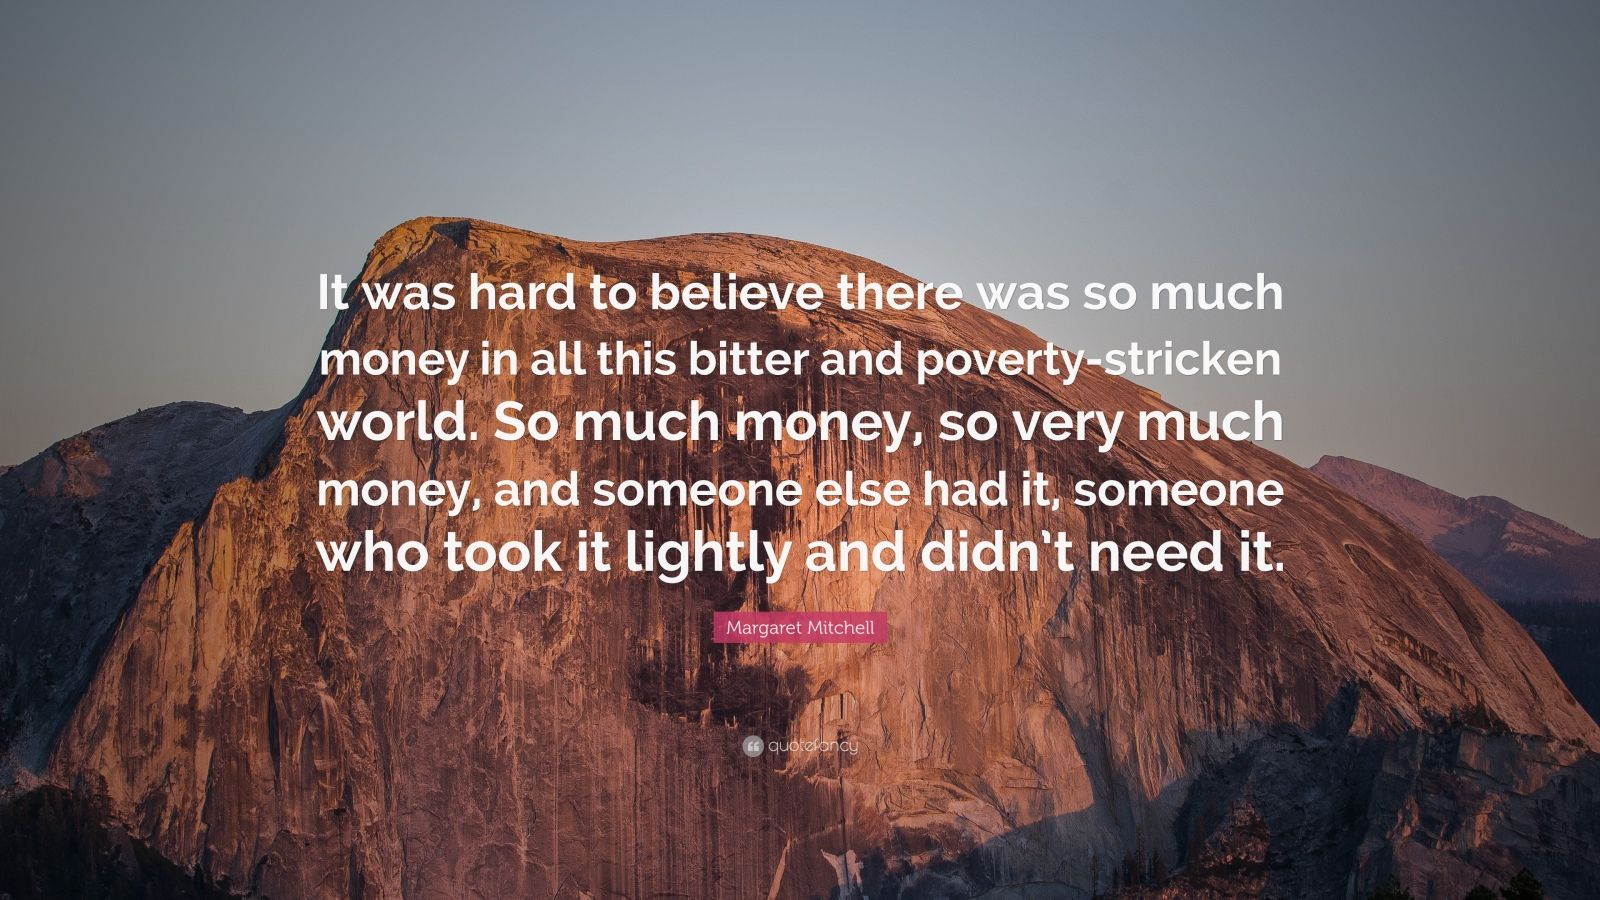 """Margaret Mitchell Quote: """"It was hard to believe there was so much money in all this bitter and poverty-stricken world. So much money, so very much money, and someone else had it, someone who took it lightly and didn't need it."""""""